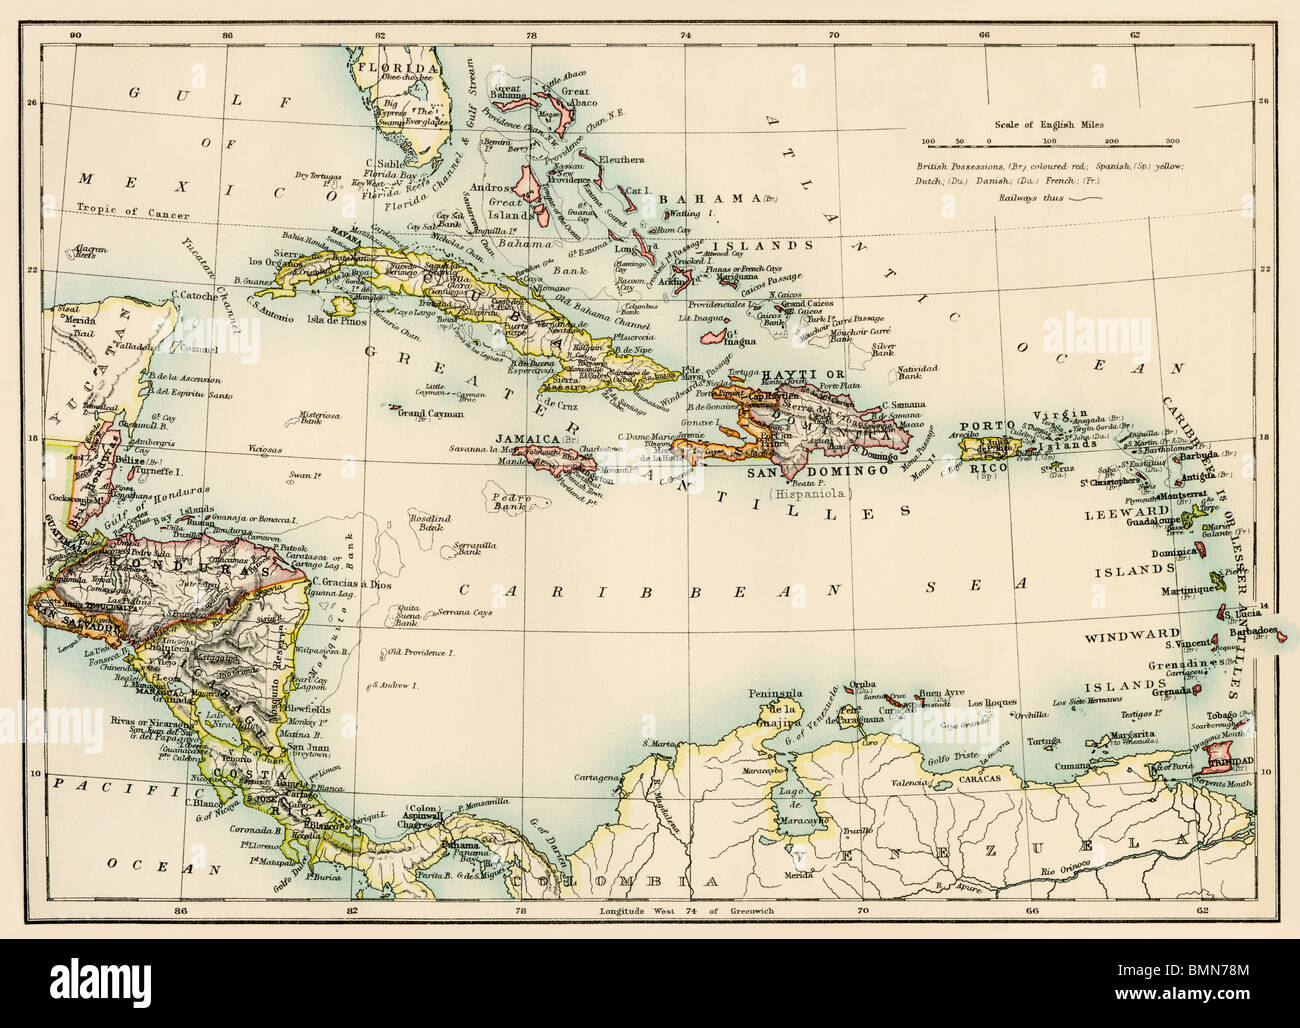 Map of cuba and florida stock photos map of cuba and florida stock map of the west indies and the caribbean sea 1800s color lithograph stock gumiabroncs Gallery